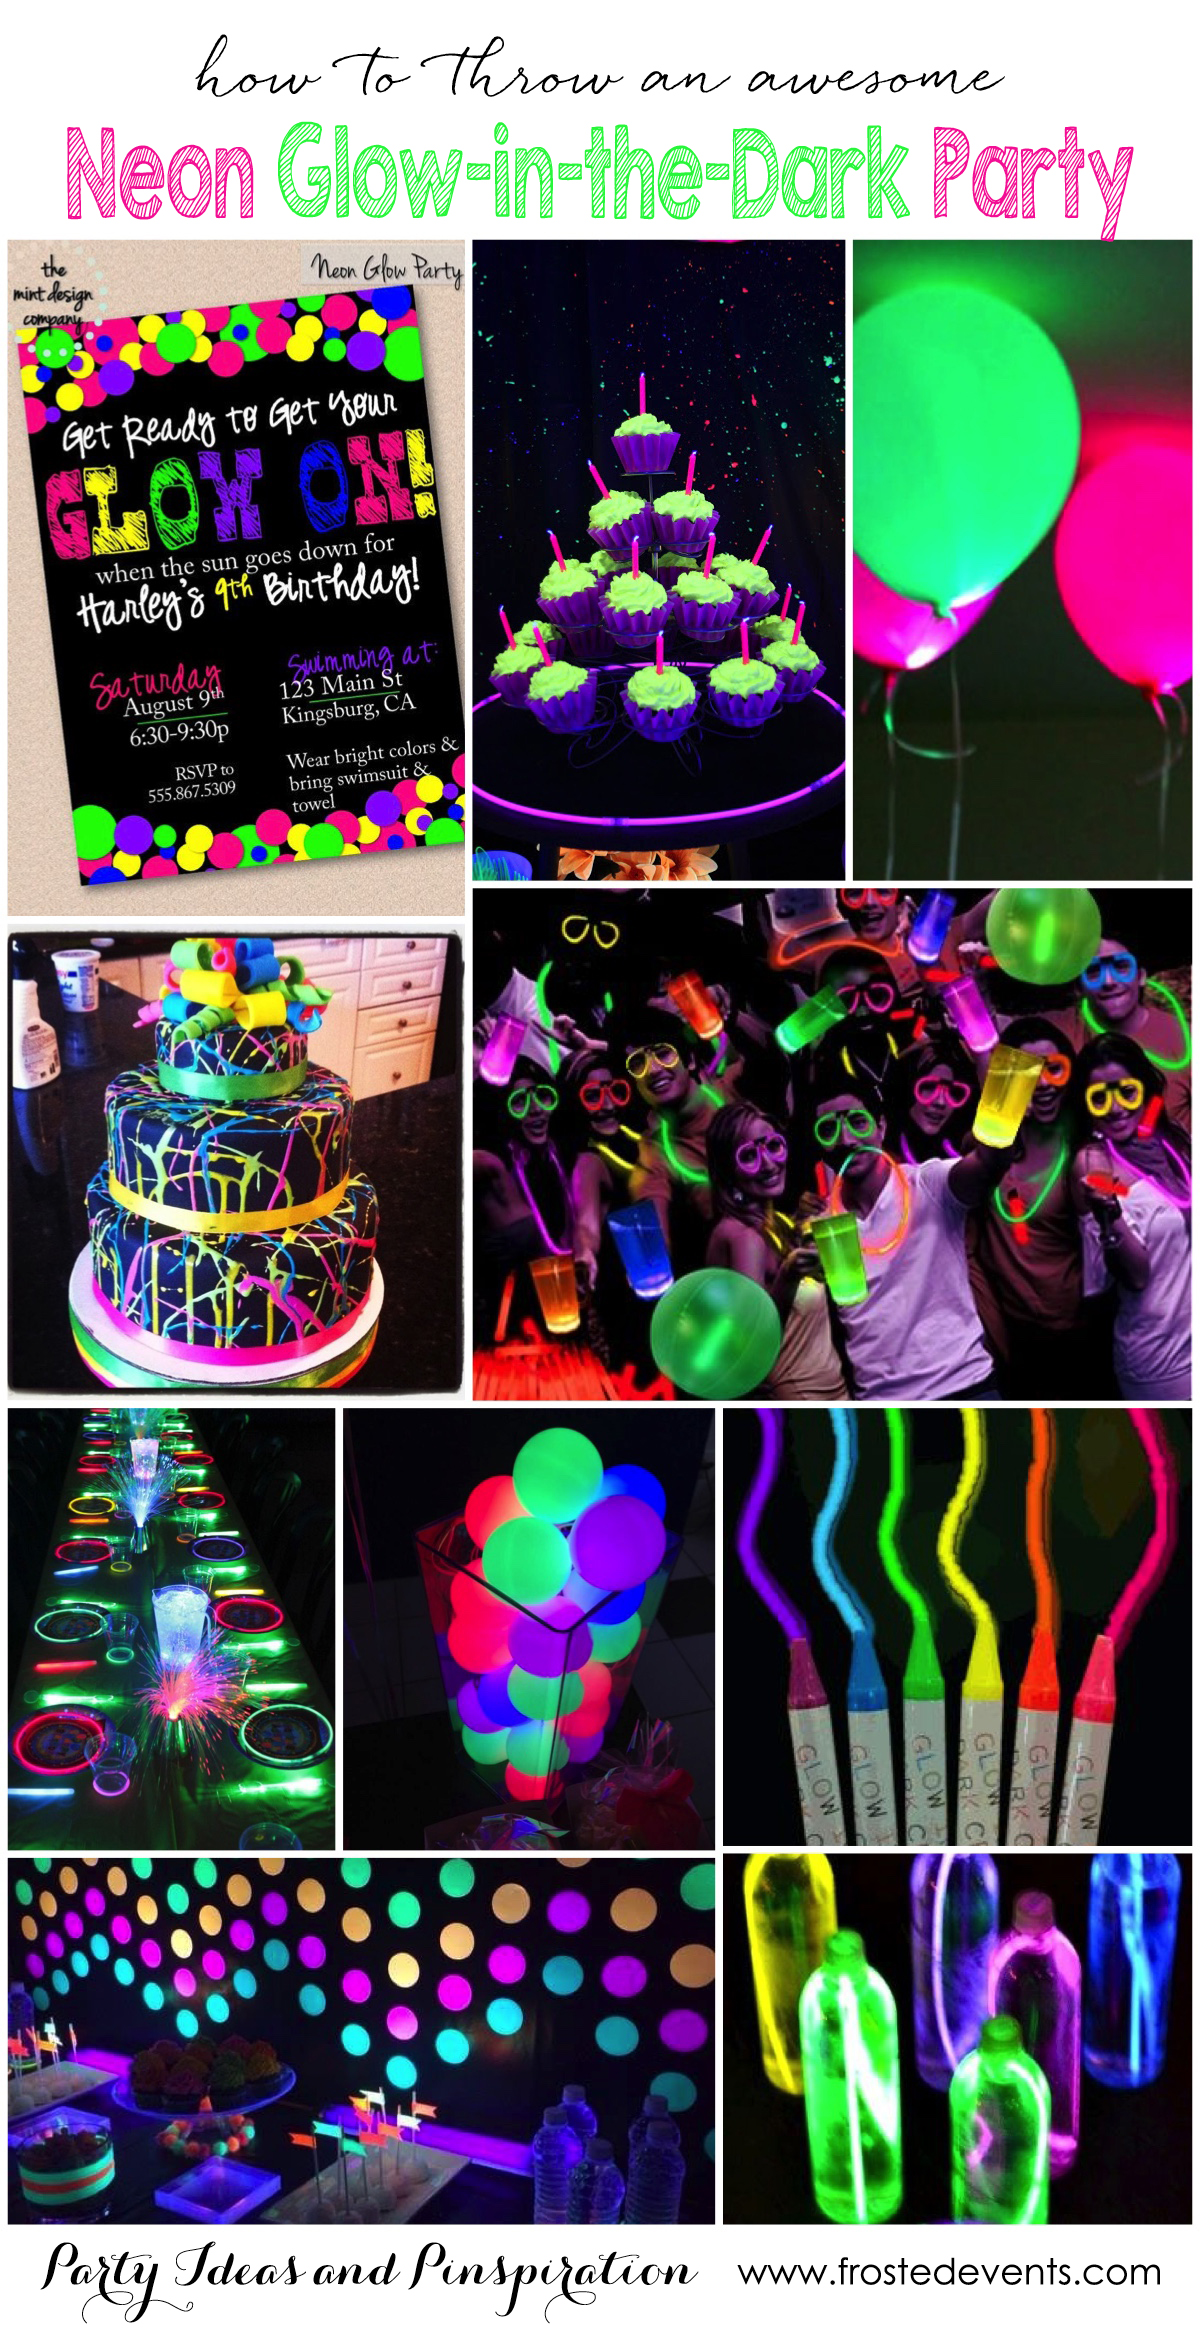 birthday themes and ideas ; neon-glow-in-the-dark-party-ideas-inspiration-kids-teen-birthday-party-frostedeventscom